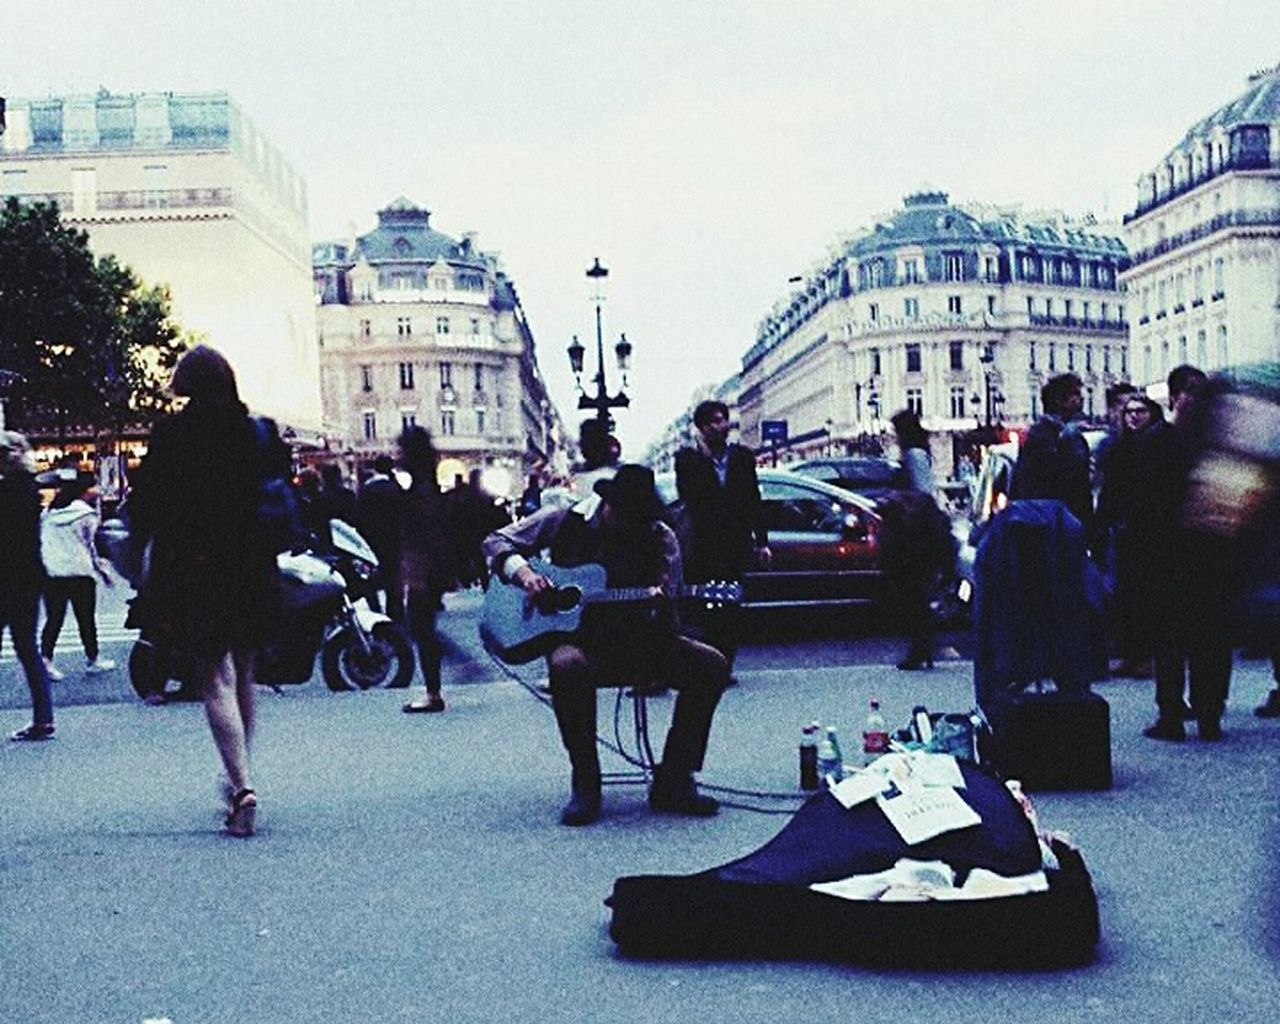 In front of the Paris Opera House, featuring a Guitarist. Musician Music Opera House France Night EyeEm Selects